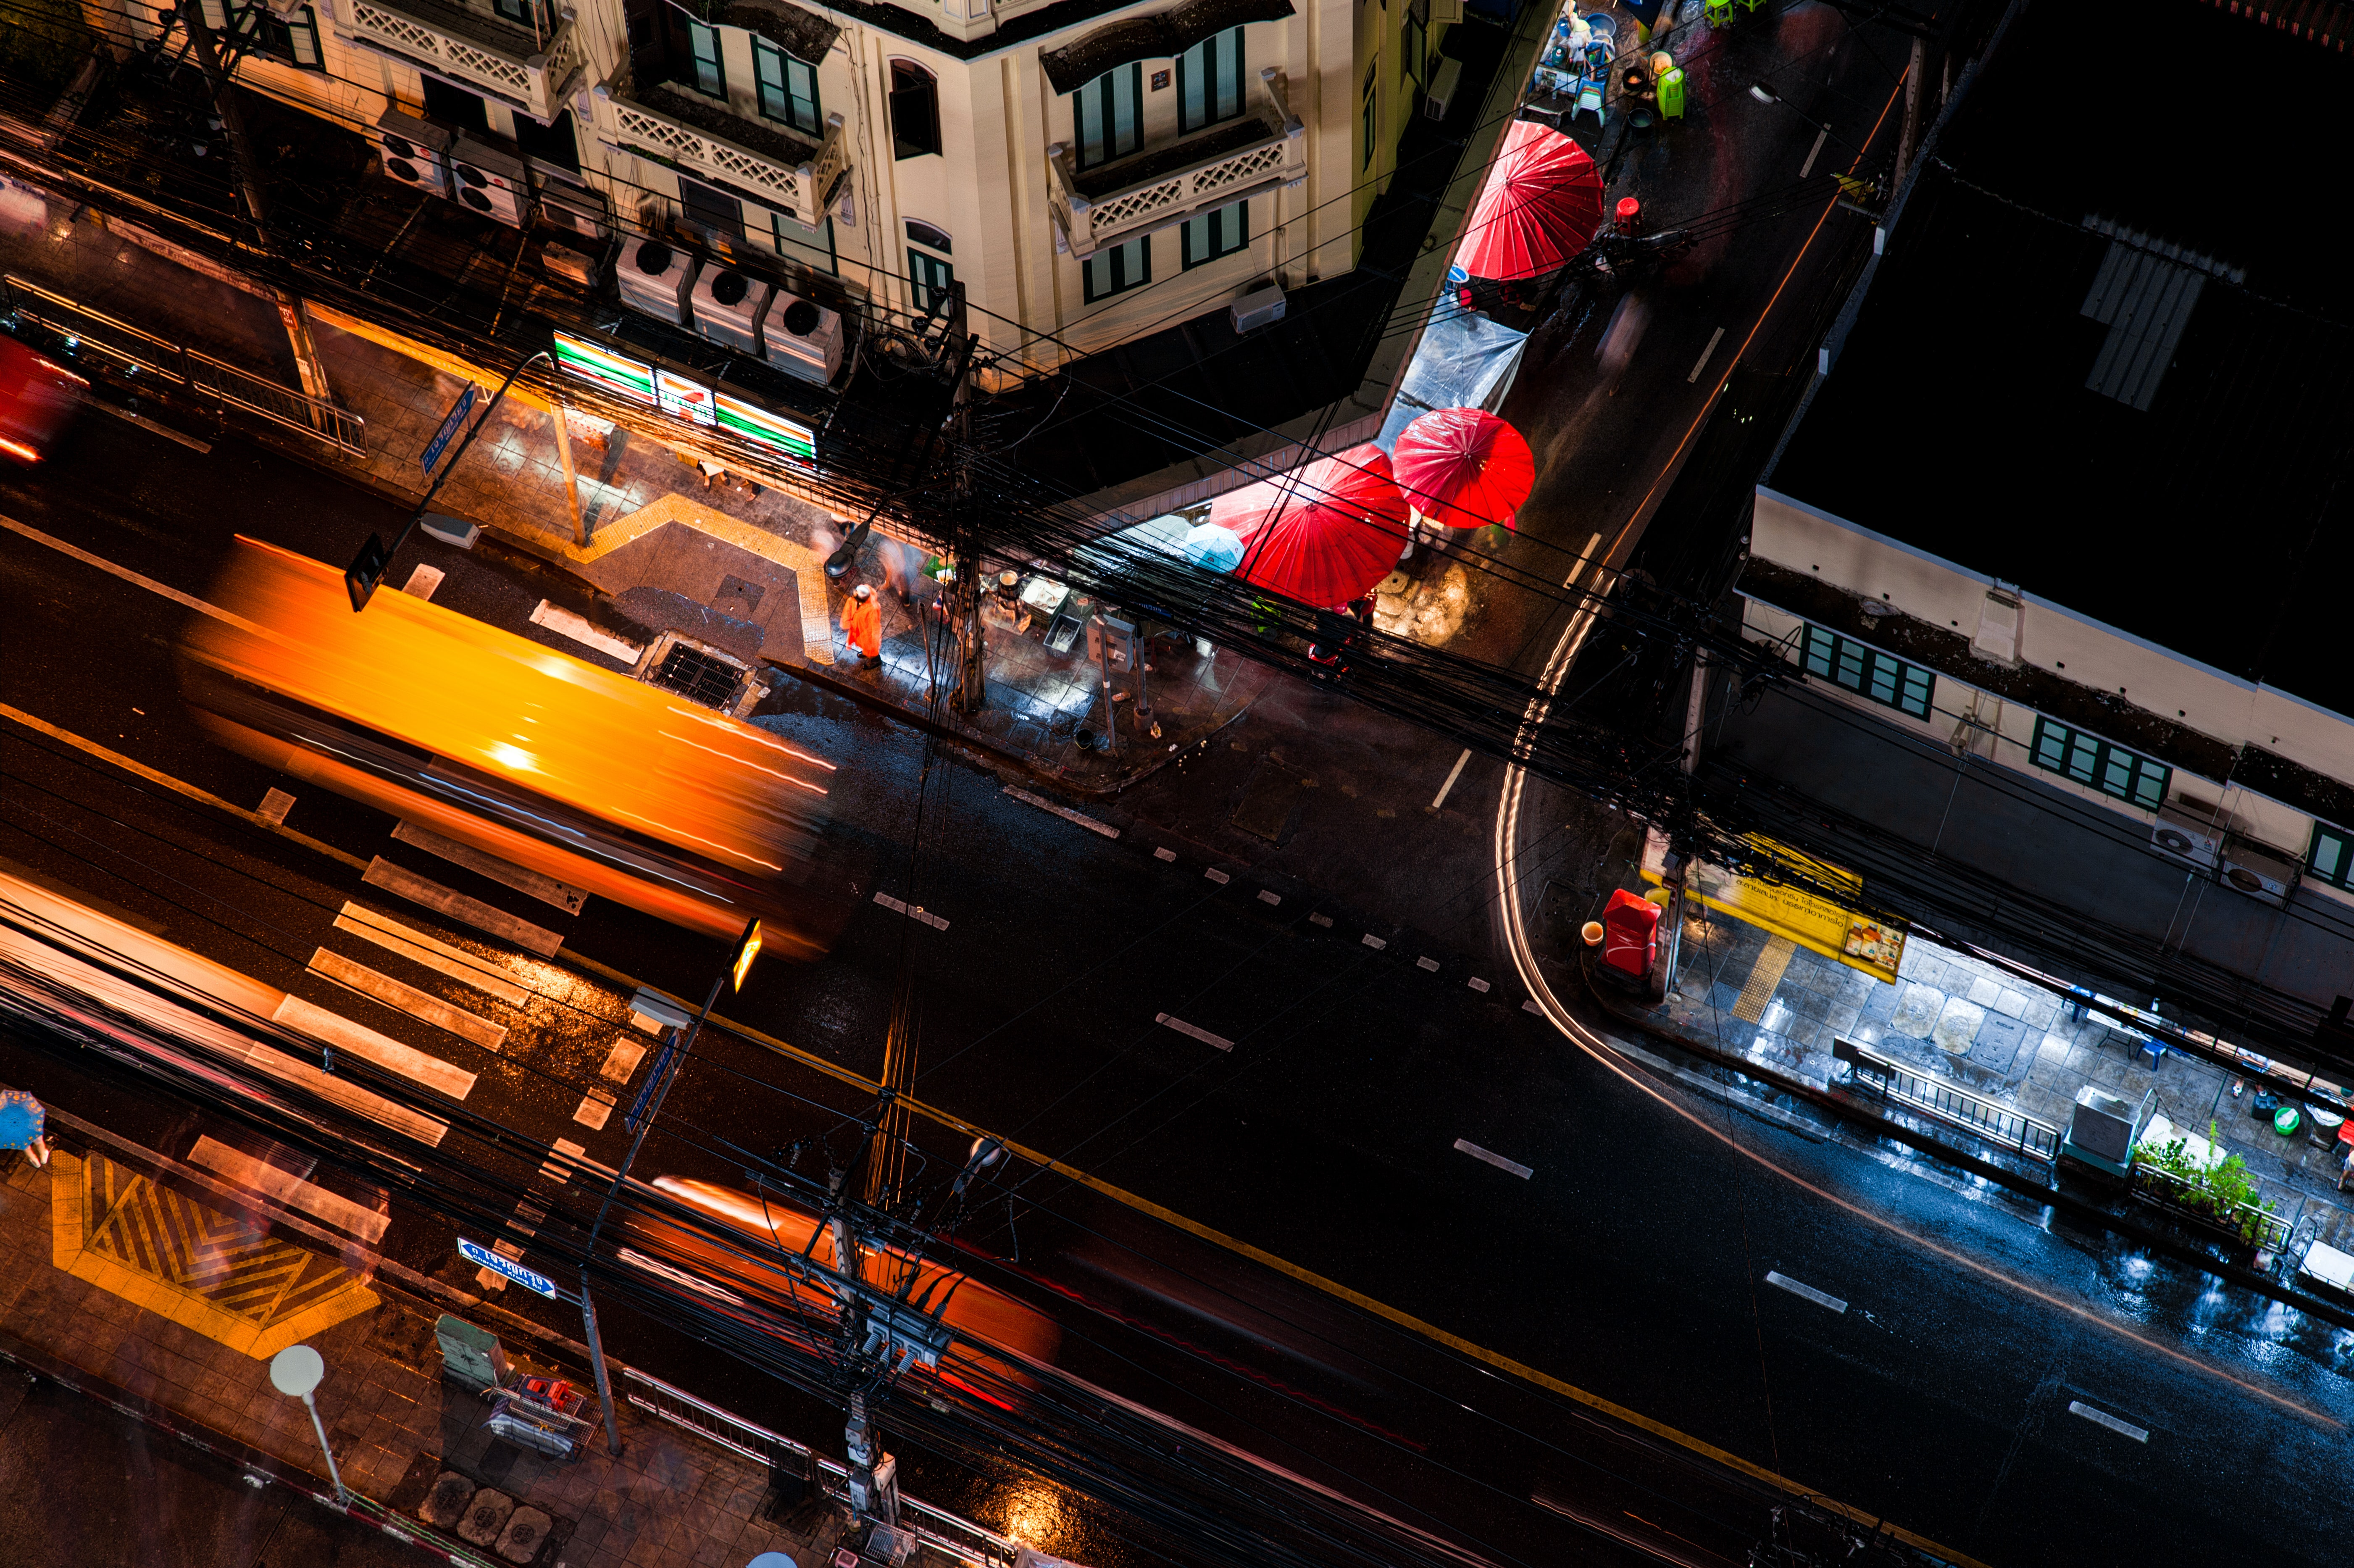 A bird's eye view taken by drone, showing the quiet night-time traffic on a road in Bangkok